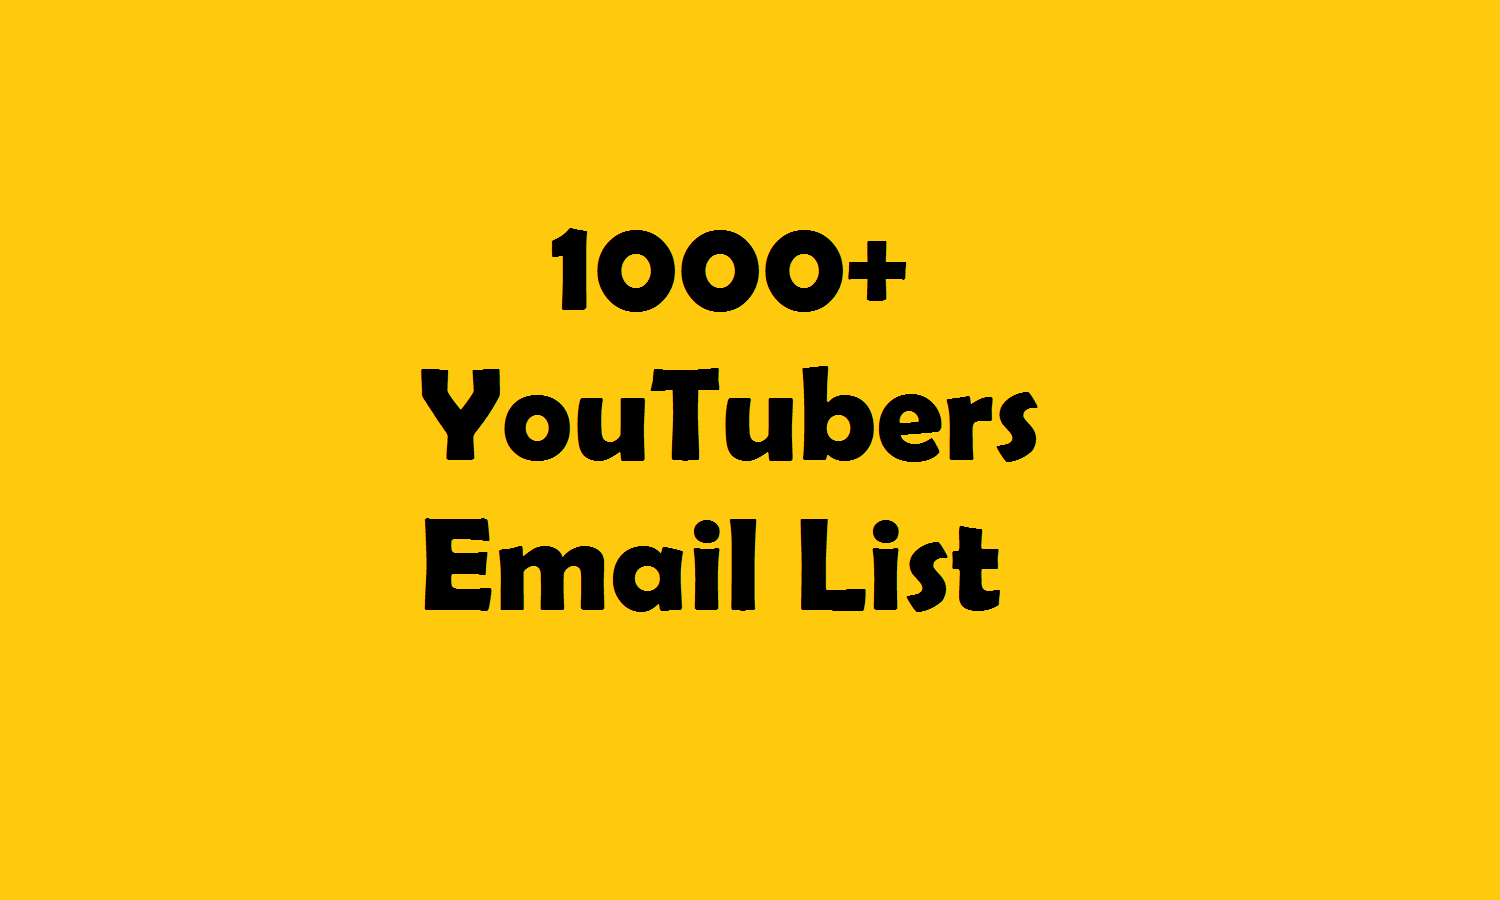 Top YouTubers list/ Email List / Contact List in Gaming Industry